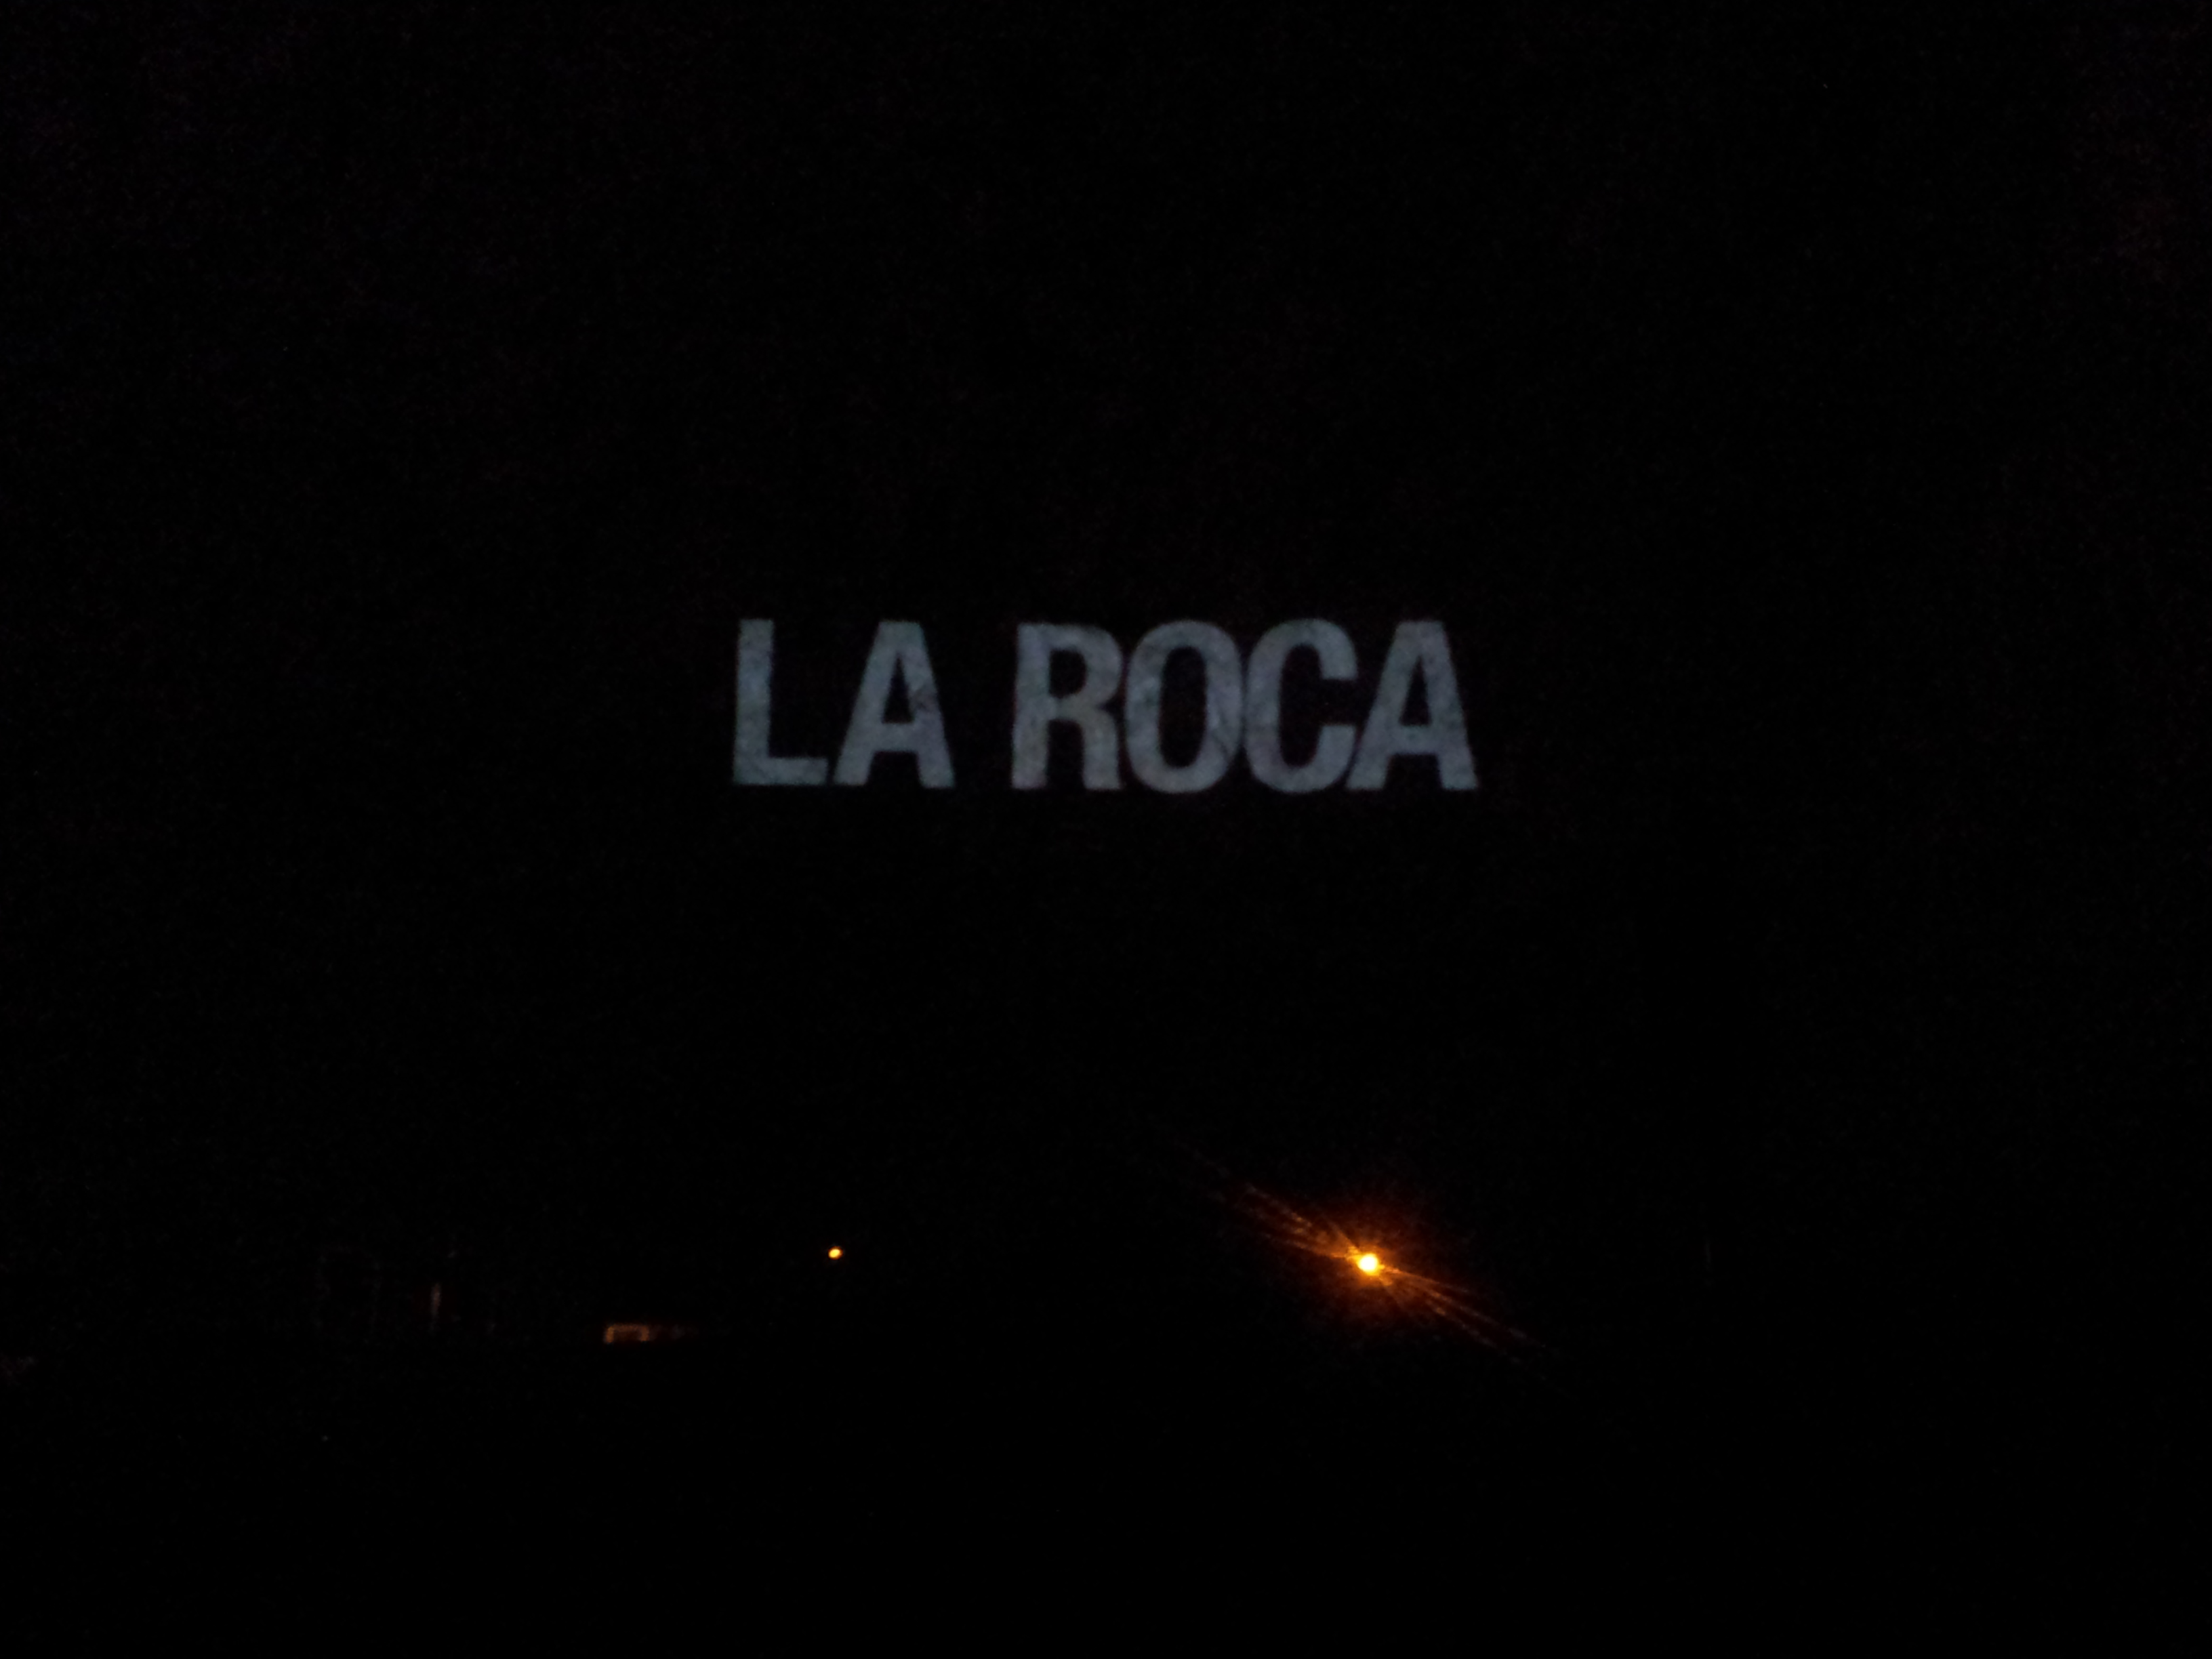 La Roca 700g Films Presents An Epic Story Of Love And Hate